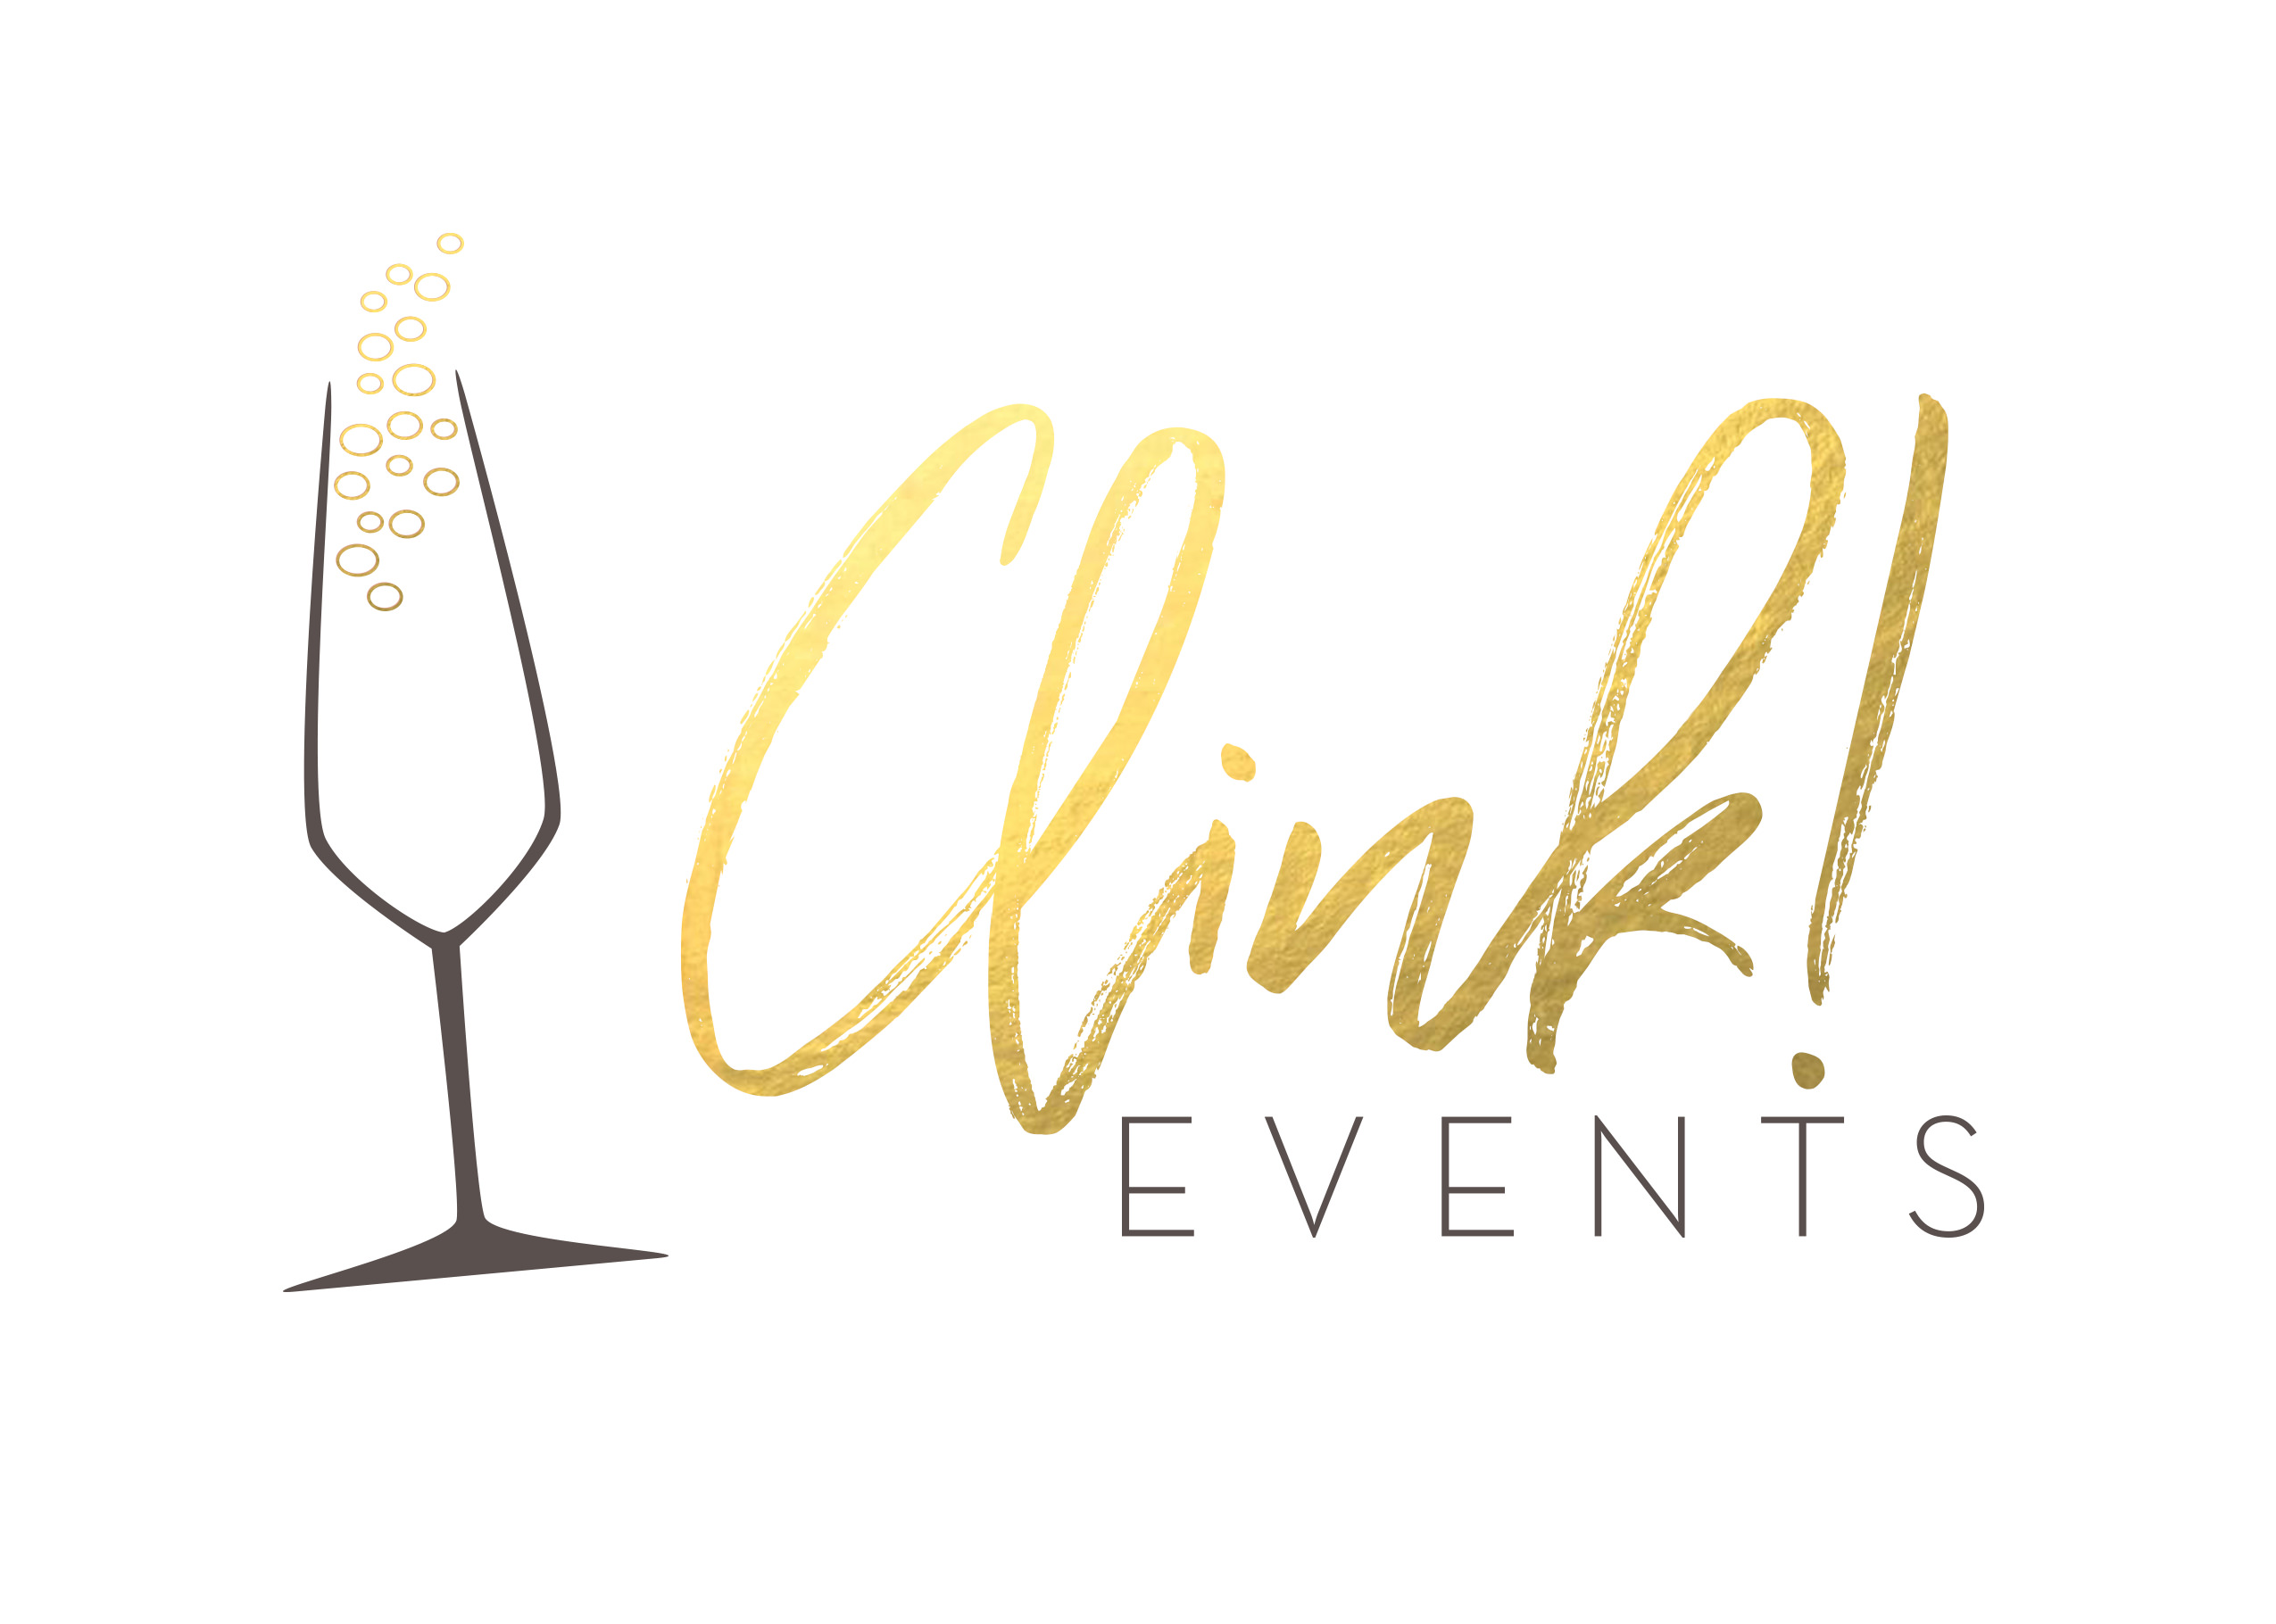 Clink! Events